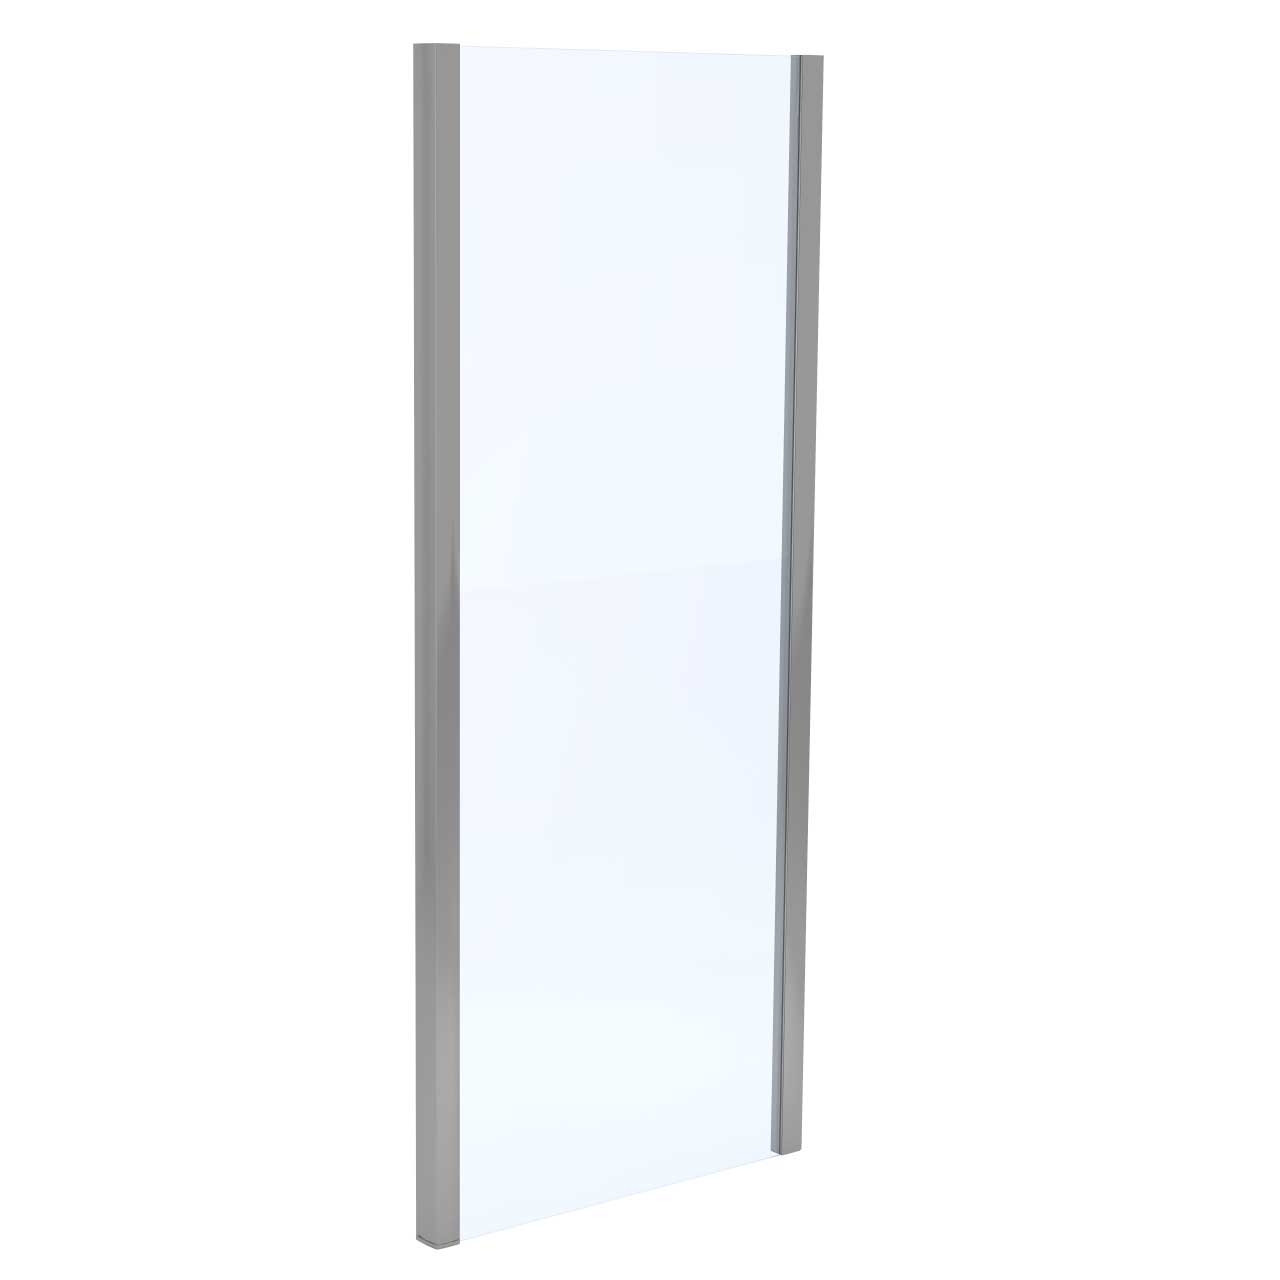 Series 6 900mm x 760mm Hinged Door Shower Enclosure